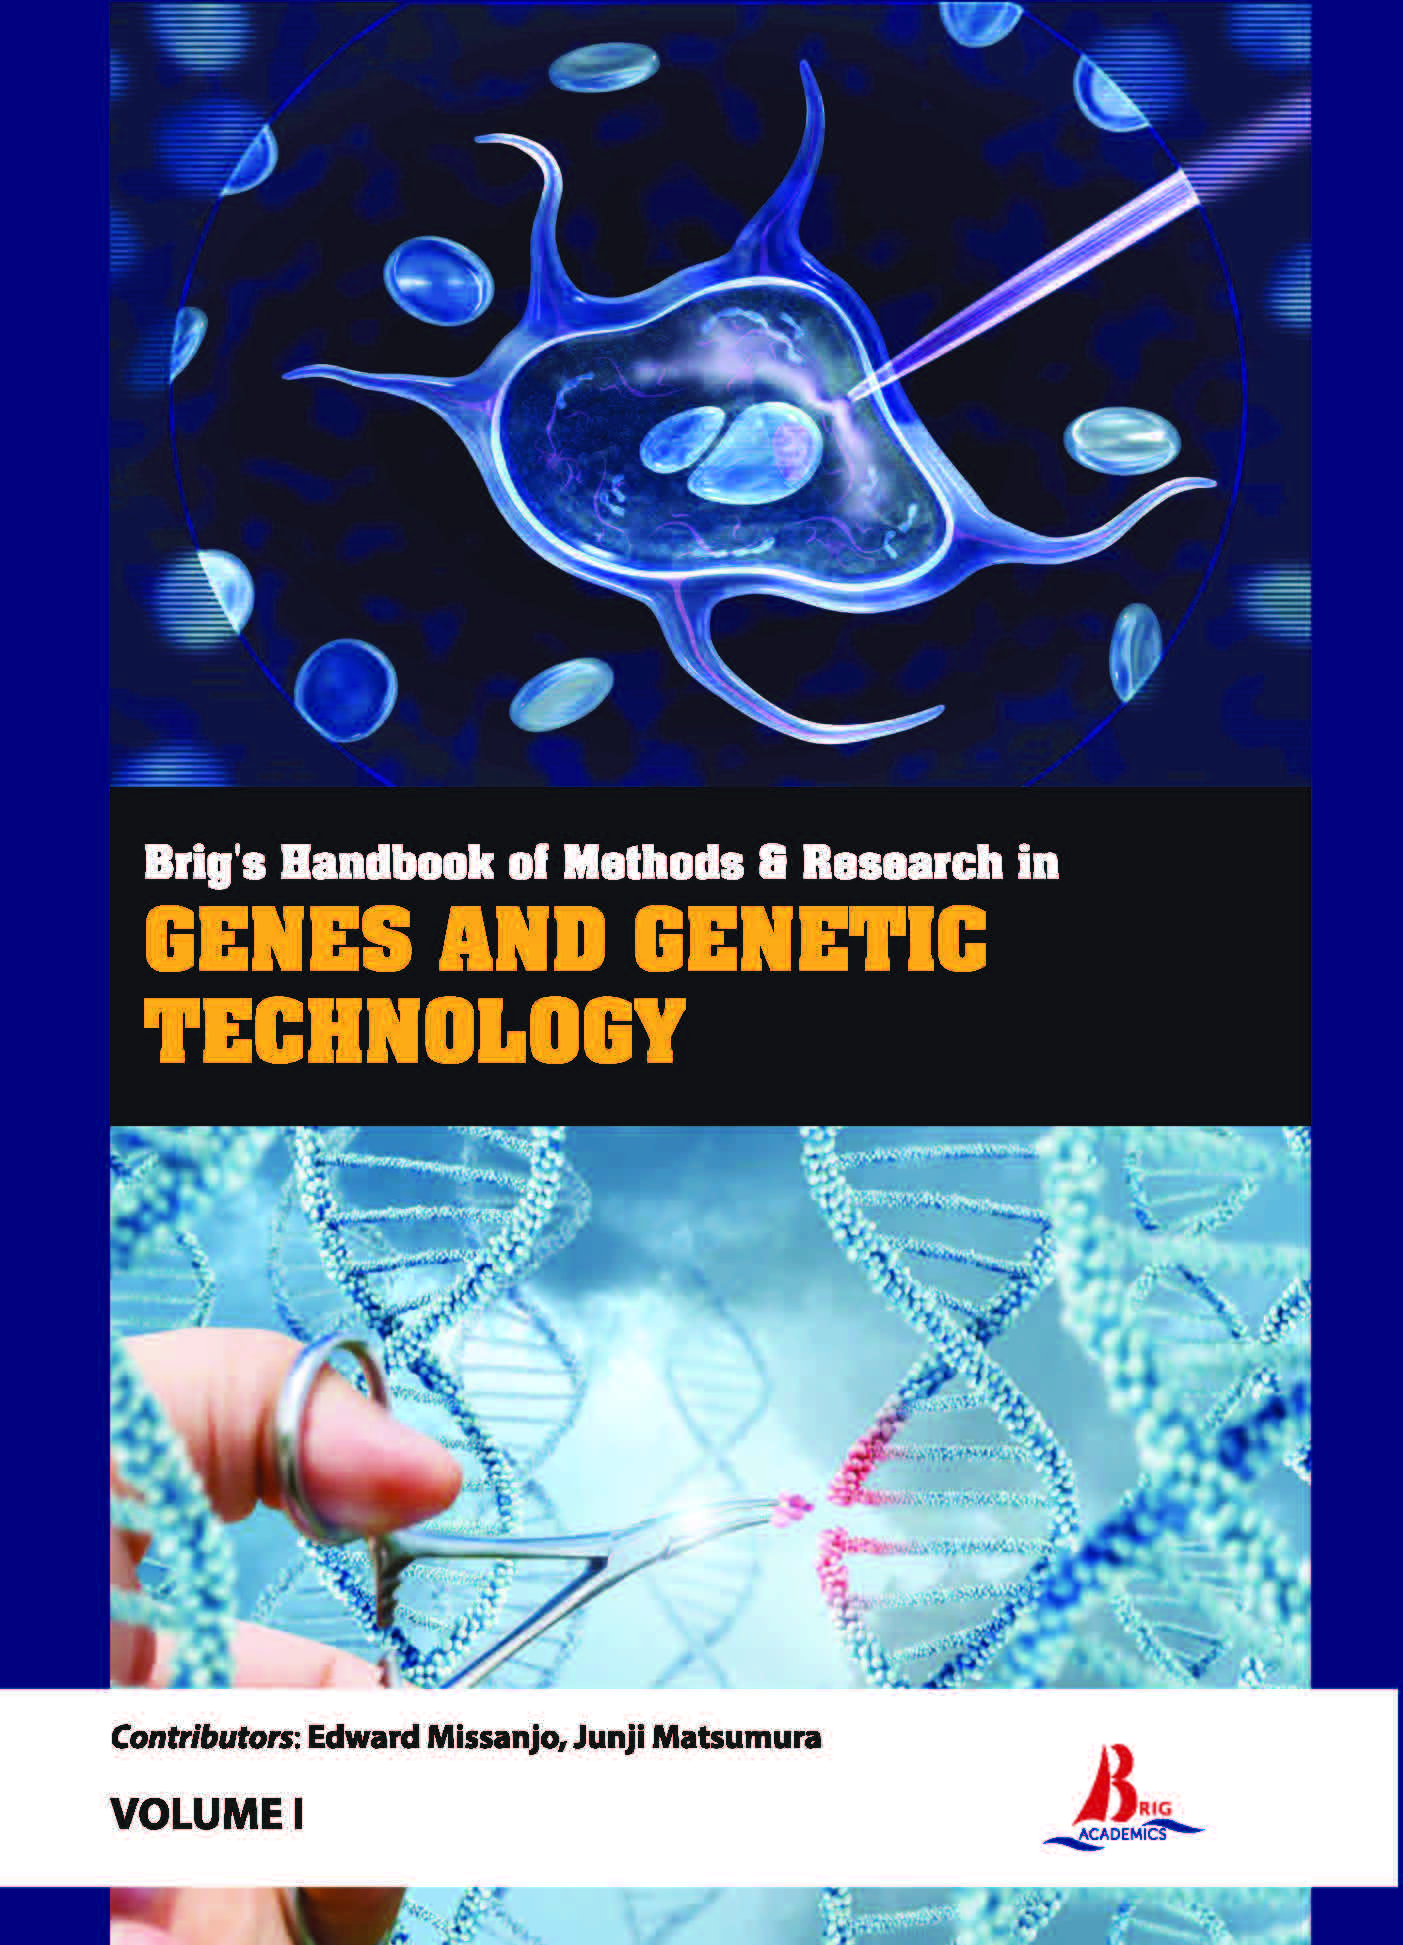 Brig's Handbook of Methods & Research in Genes and Genetic Technology